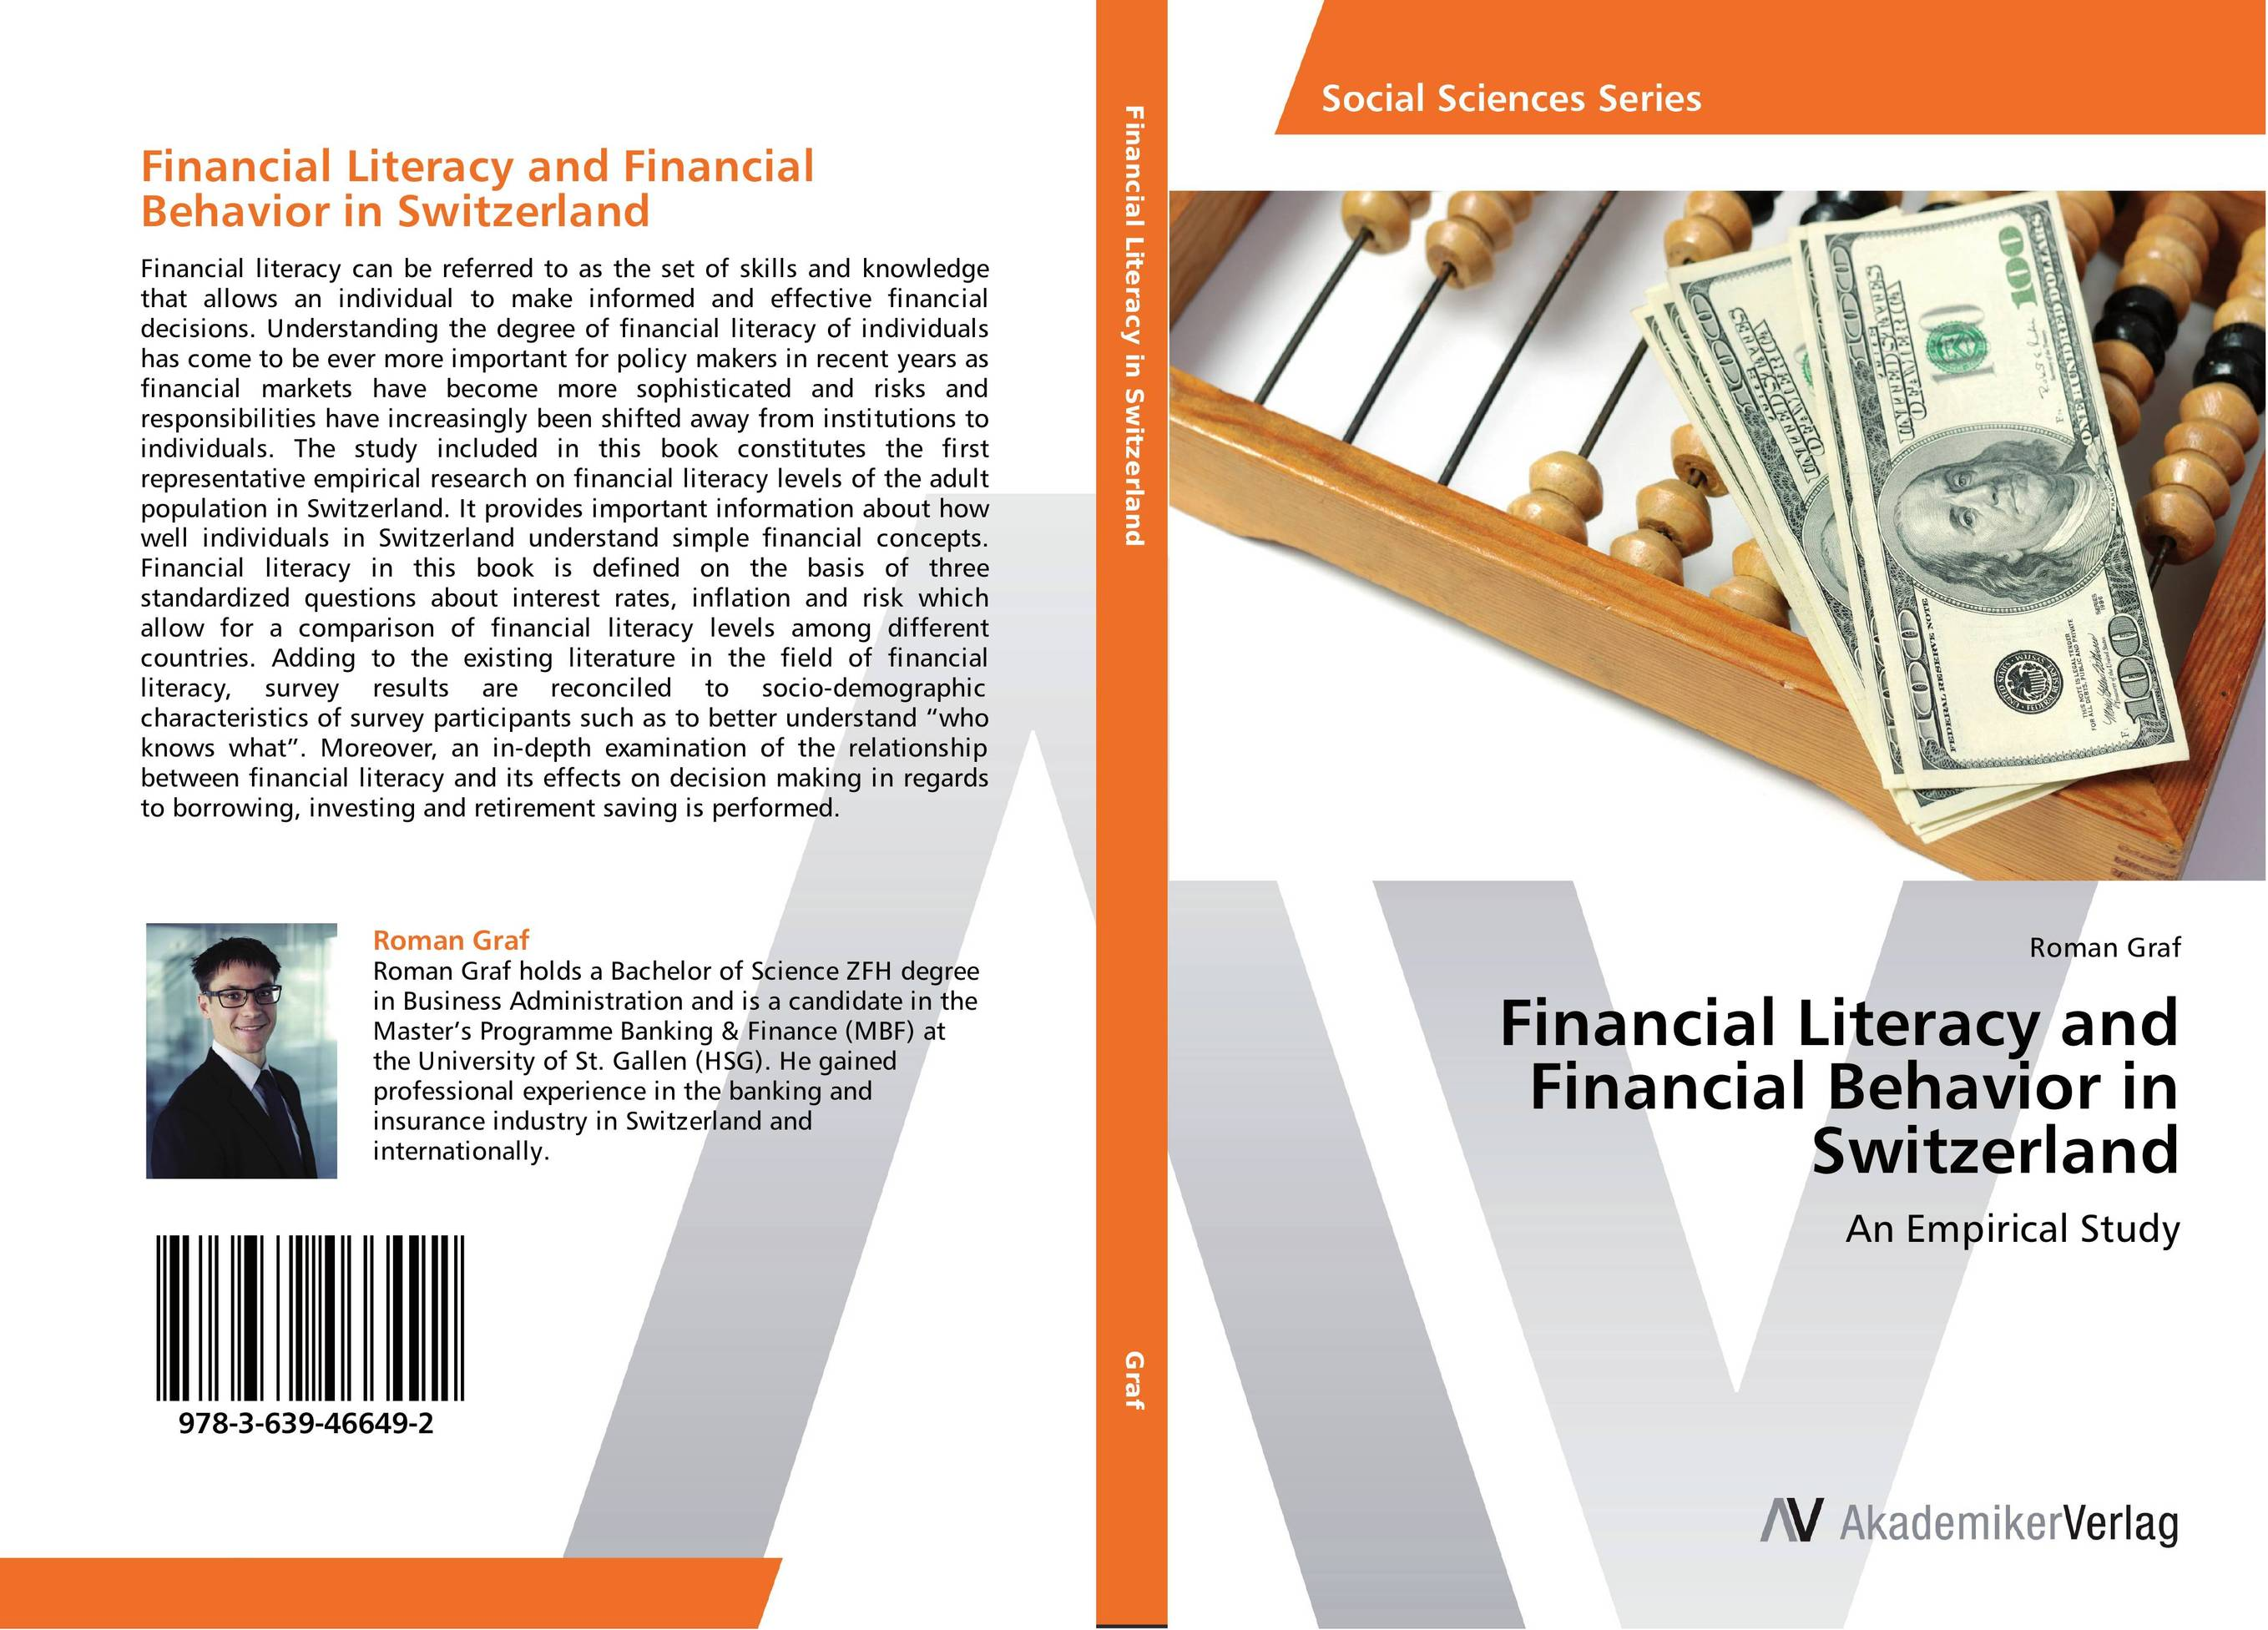 Financial Literacy and Financial Behavior in Switzerland different ways to organize the processes of financial administration